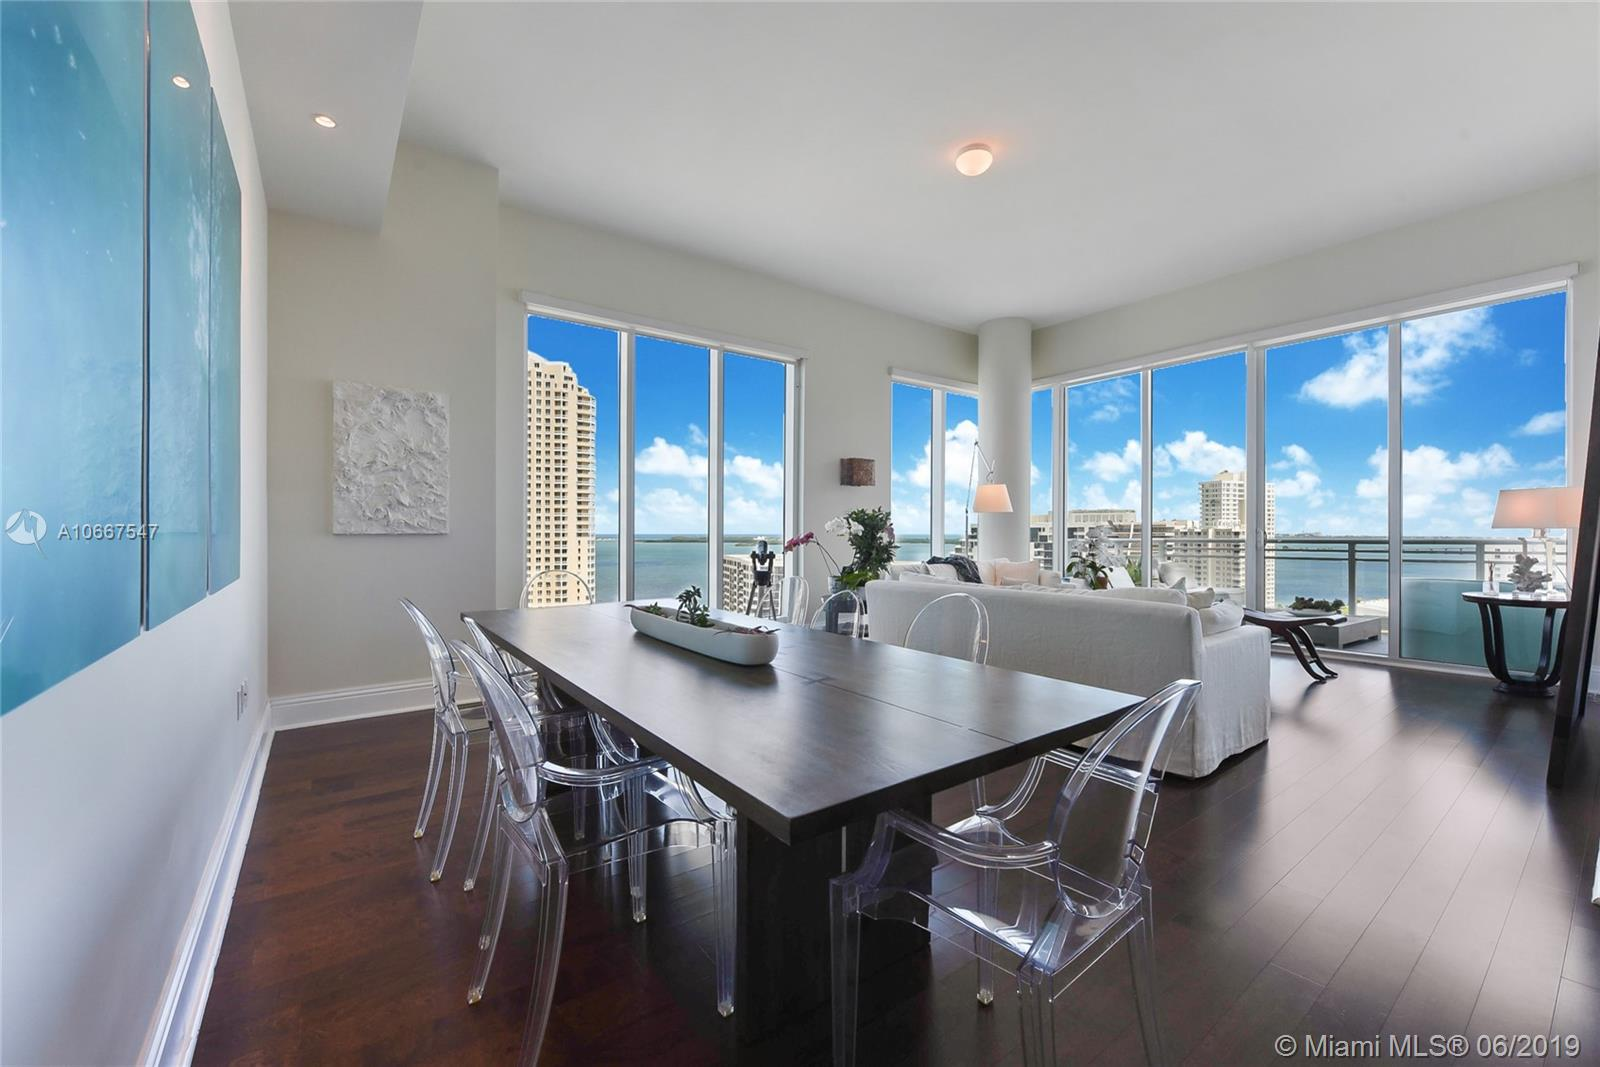 Asia is the premier luxury building on Brickell Key, a private island right in the center of Miami. This unit boasts scenic views of the both the bay and Miami skyline. From a newly remodeled open-kitchen with Miele and Sub-zero appliances, to a private elevator, luxury baths, 12' ceilings. This unit also has 3 bedrooms and a den with a full bathroom which can be used as an extra bedroom. The building offers a gym, racquet ball and tennis court, pool, valet parking, 24- hour concierge service, and much more.